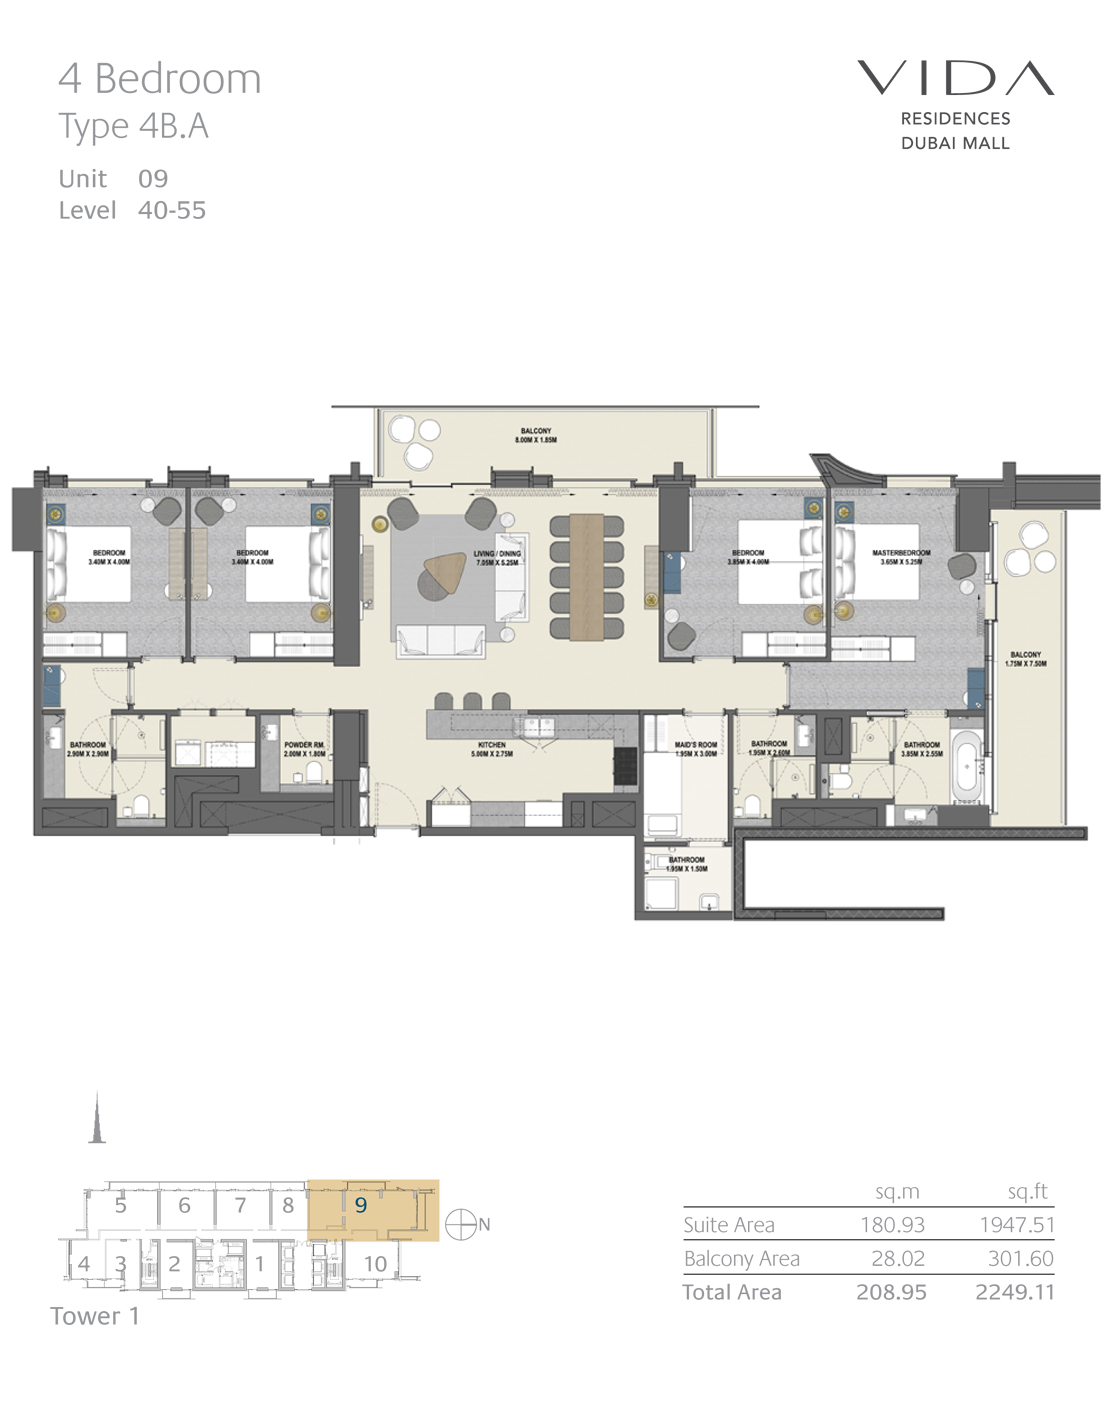 4 Bedroom Type 4B.A Unit 09 Level 40-55